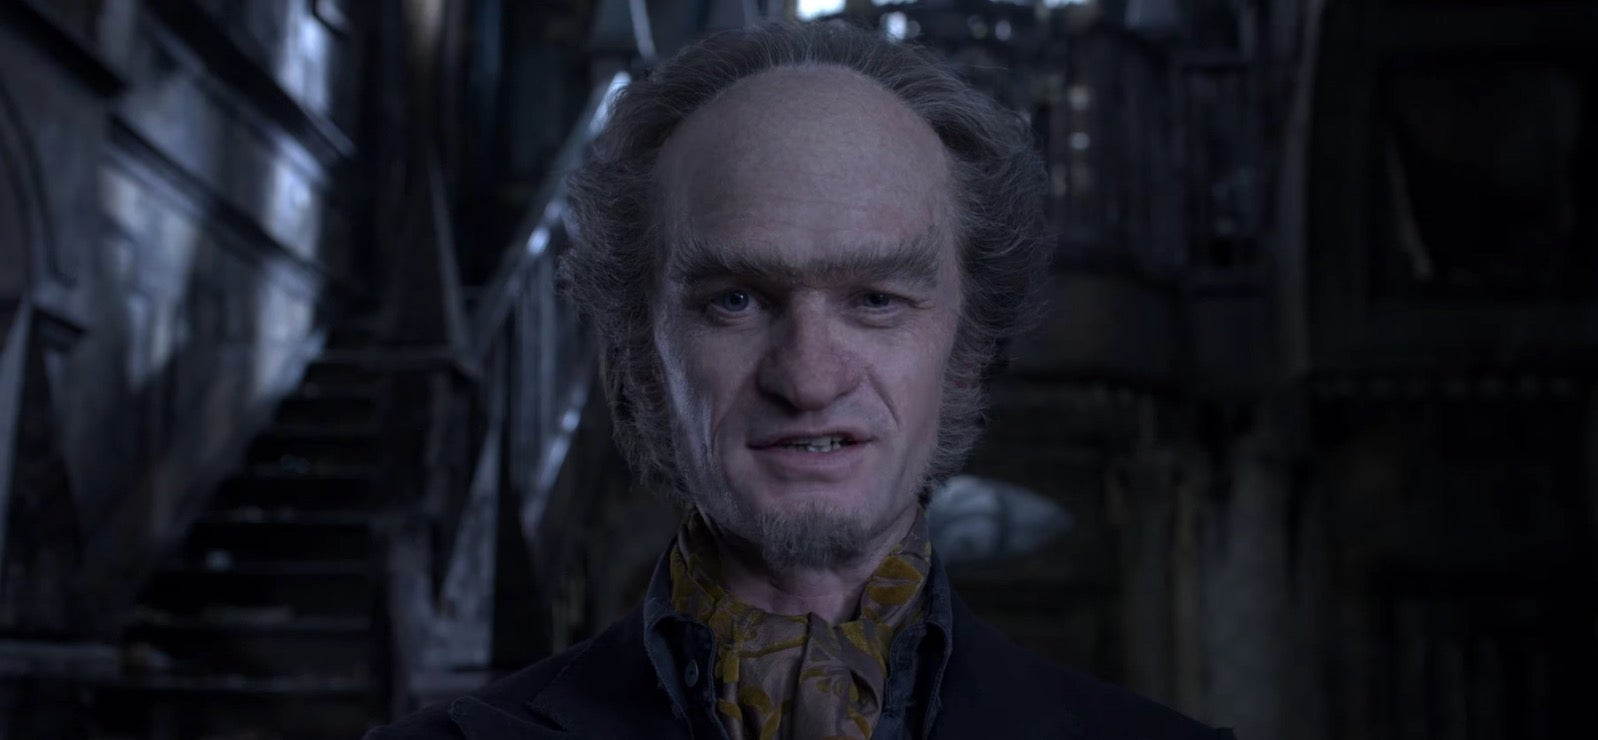 The Full Trailer For Netflix's A Series Of Unfortunate Events Show Is Better Than The Movie